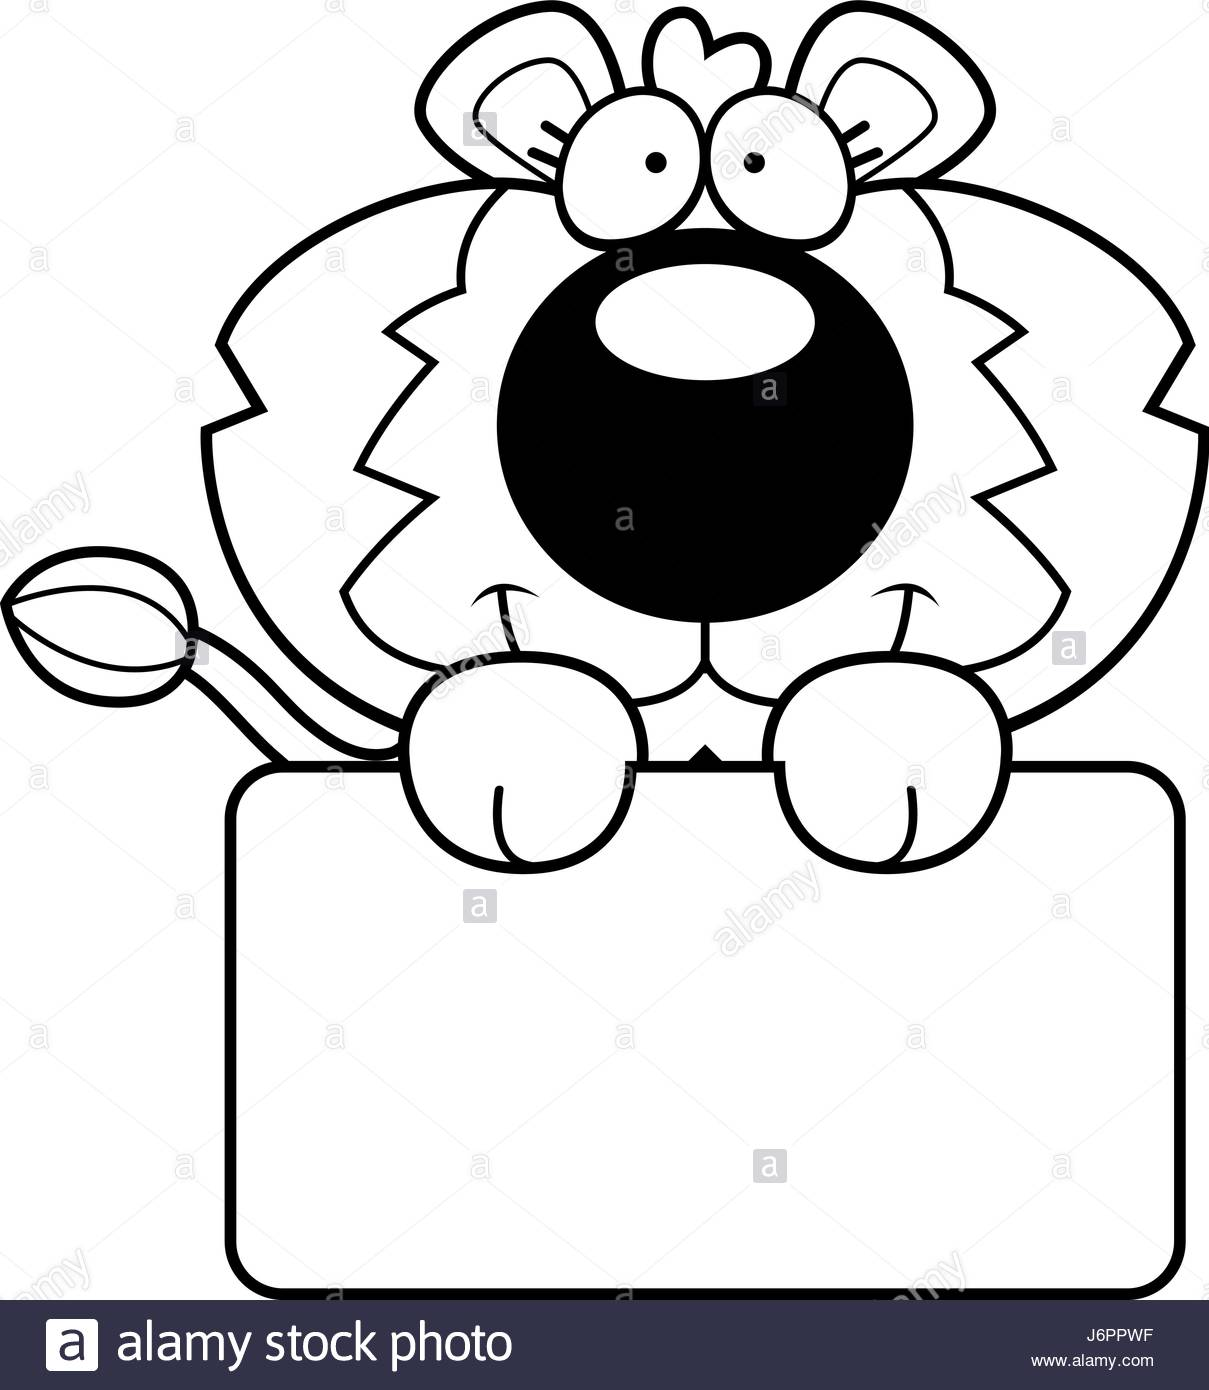 1209x1390 A Cartoon Illustration Of A Lion Cub With A White Sign Stock